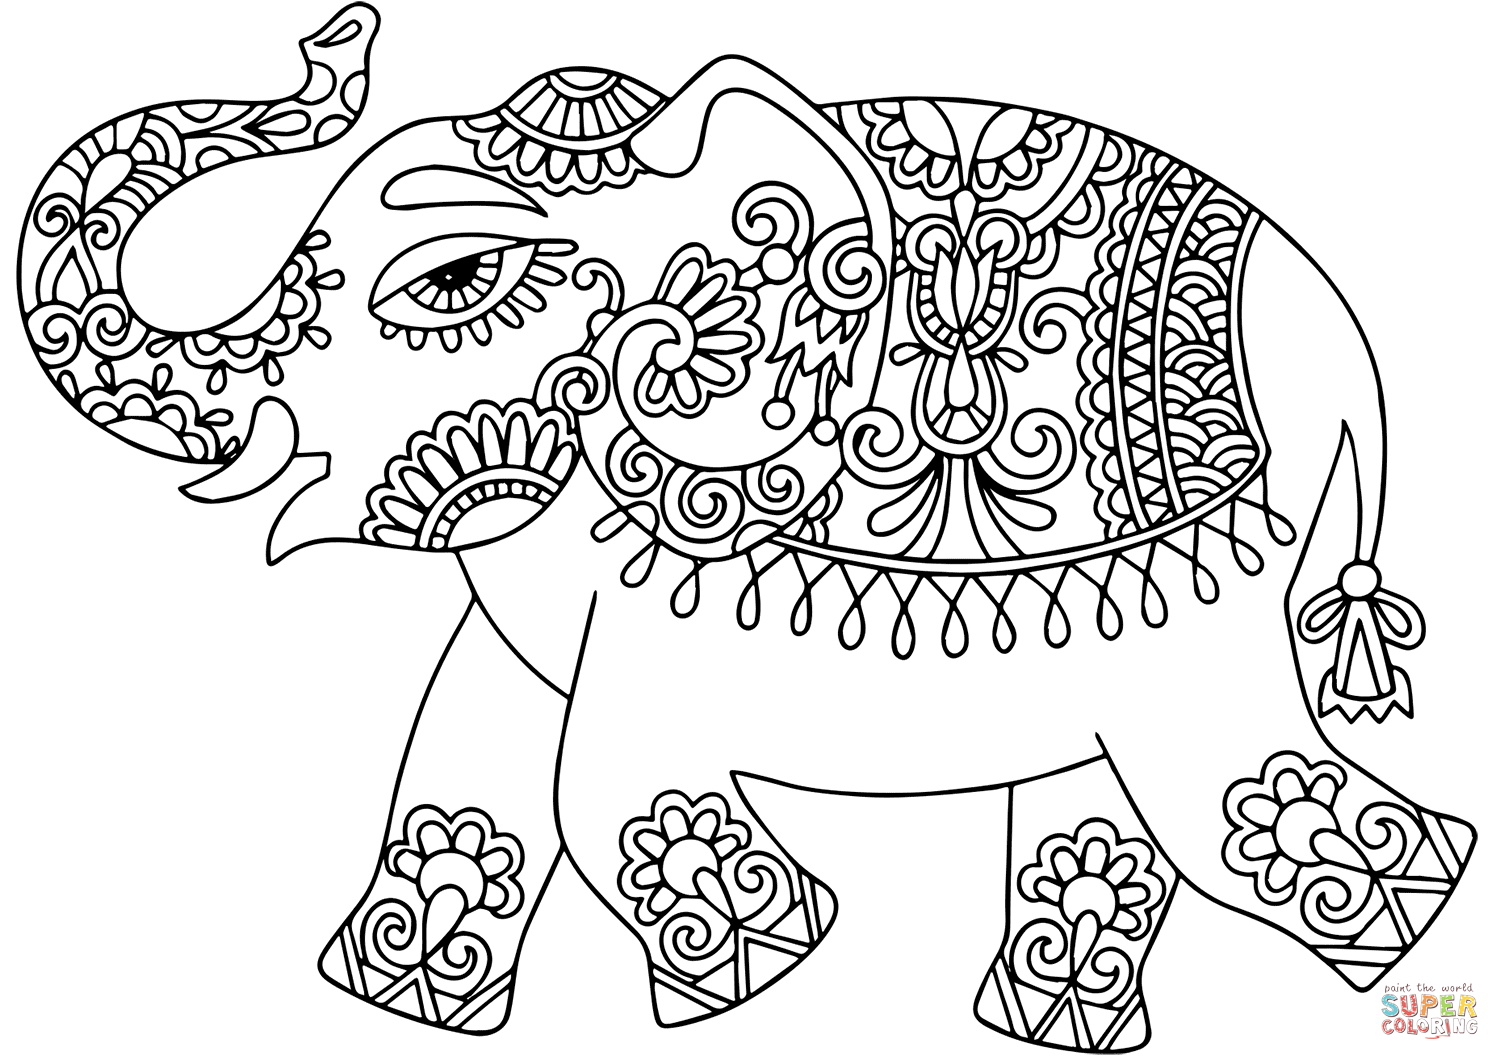 Elephant With Indian Pattern Coloring Page Free Printable Coloring Pages Elephant Coloring Page Elephant Colouring Pictures Indian Elephant Drawing